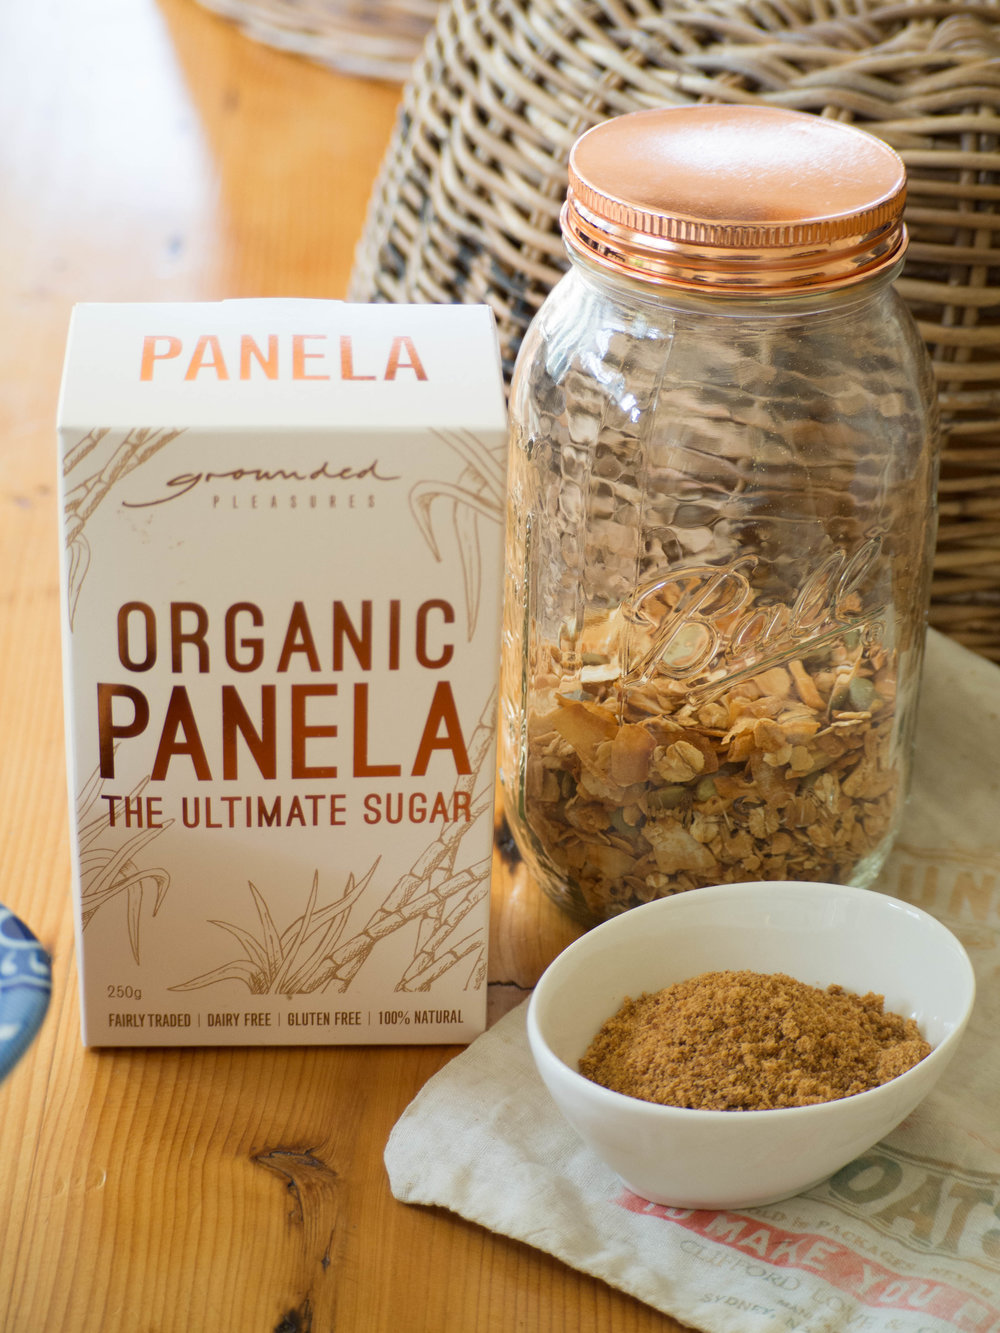 Grounded Pleasures  Organic Panela Sugar - used in crumble mixture